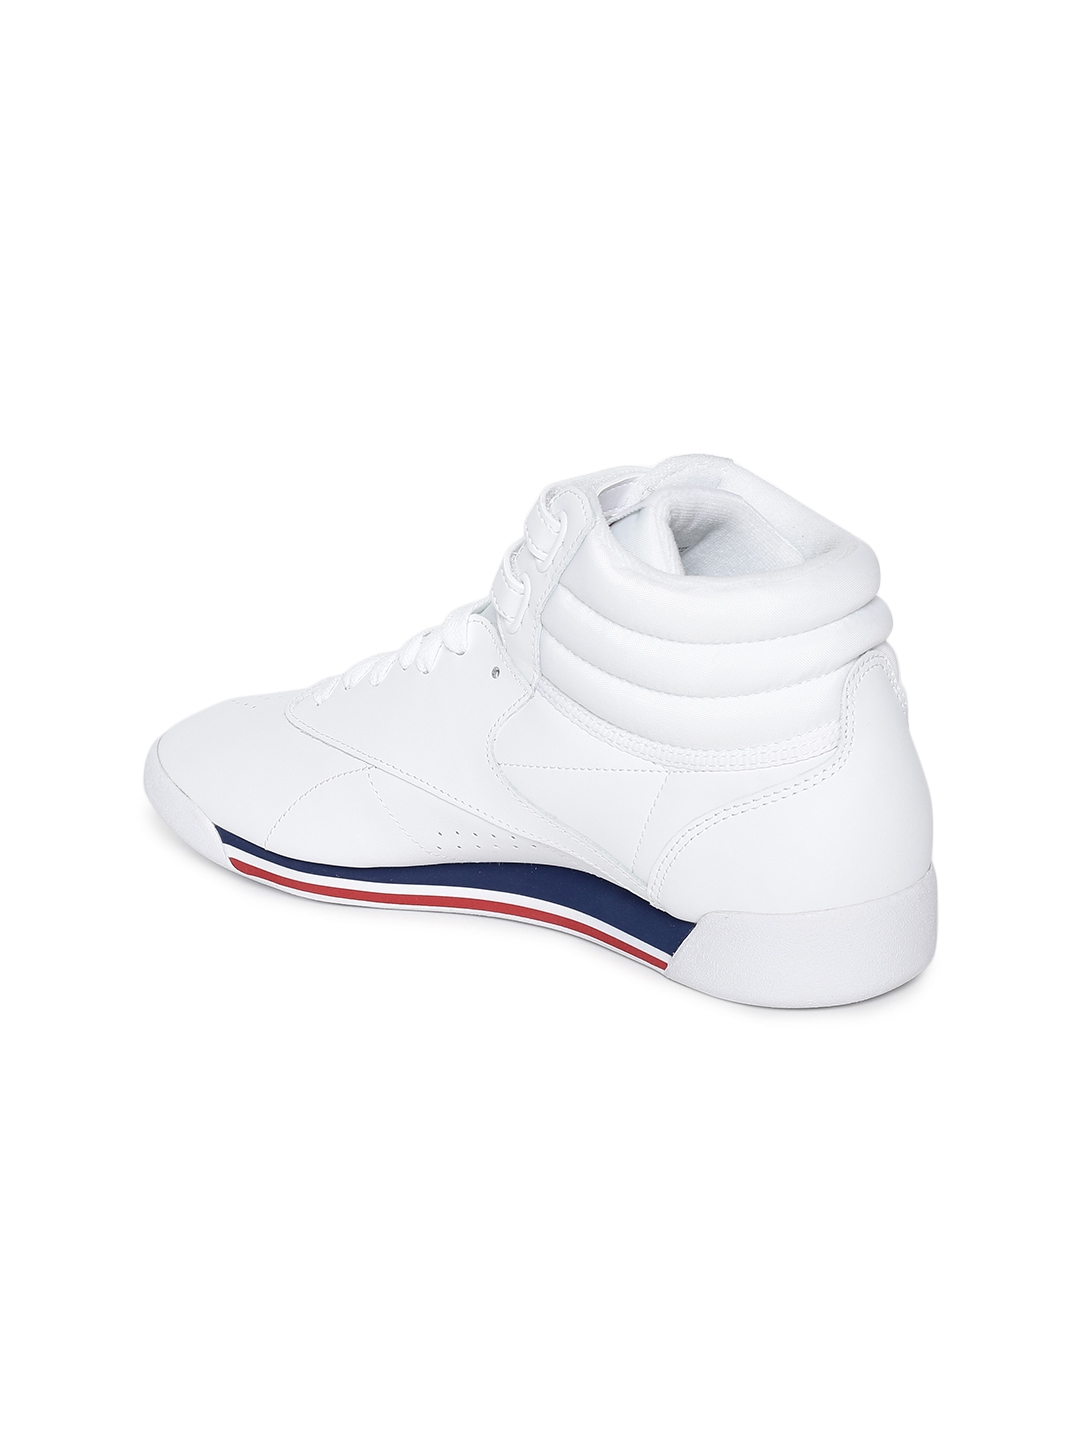 7a16a0030dada Buy Reebok Classic Women White Leather Freestyle Hi Mid Top Sneakers ...